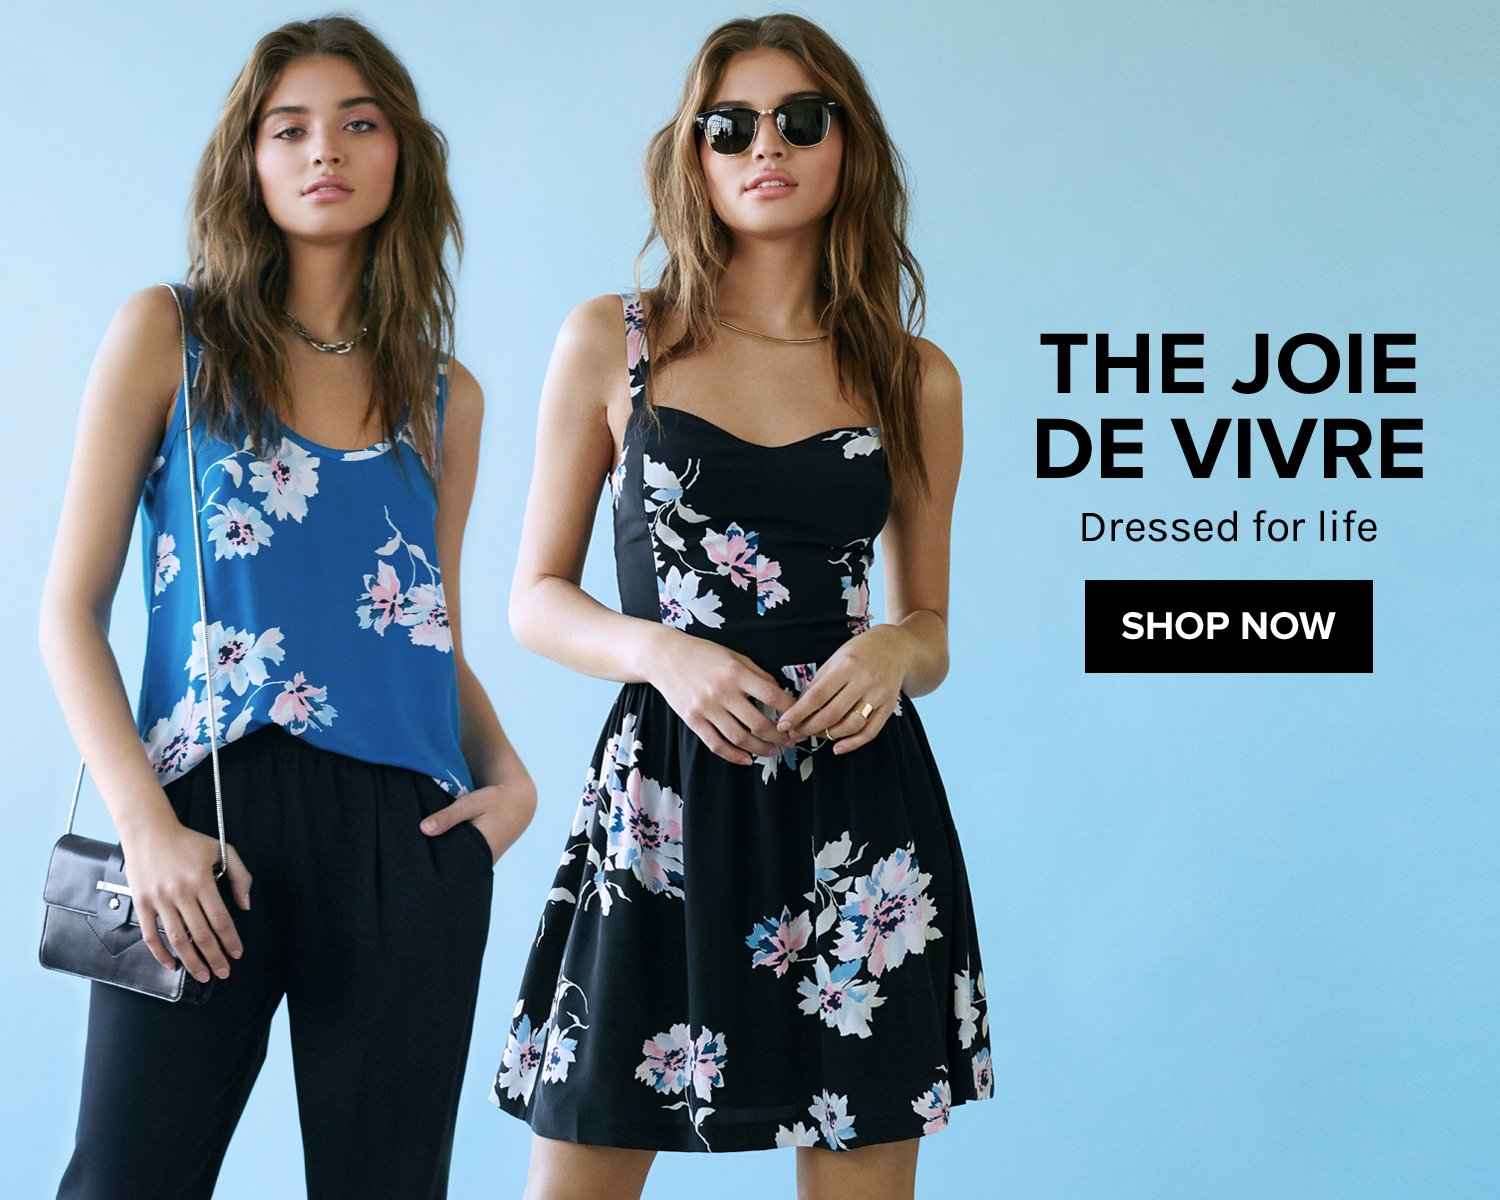 The Joie de Vivre. Dressed for life. SHOP NOW!